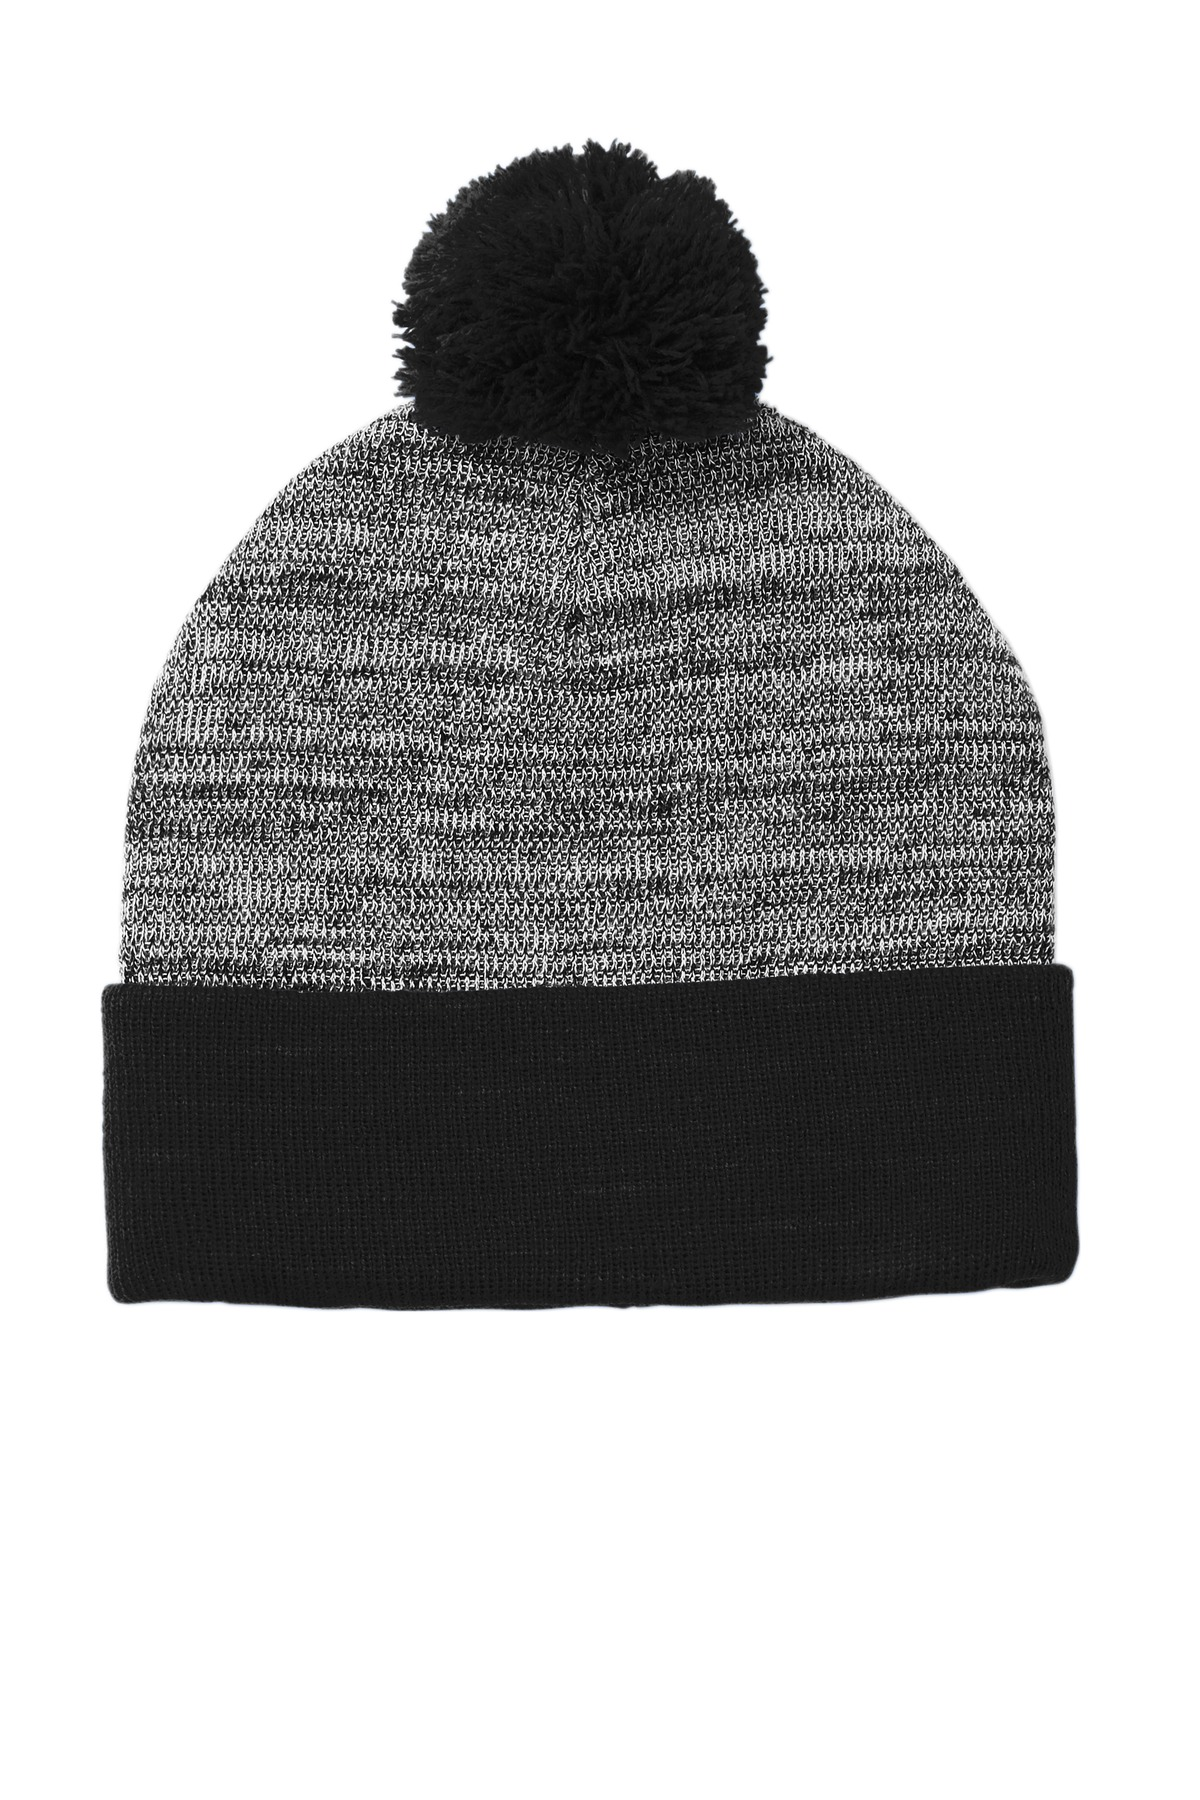 Sport-Tek  ®  Heather Pom Pom Beanie STC41 - Black/ Grey Heather